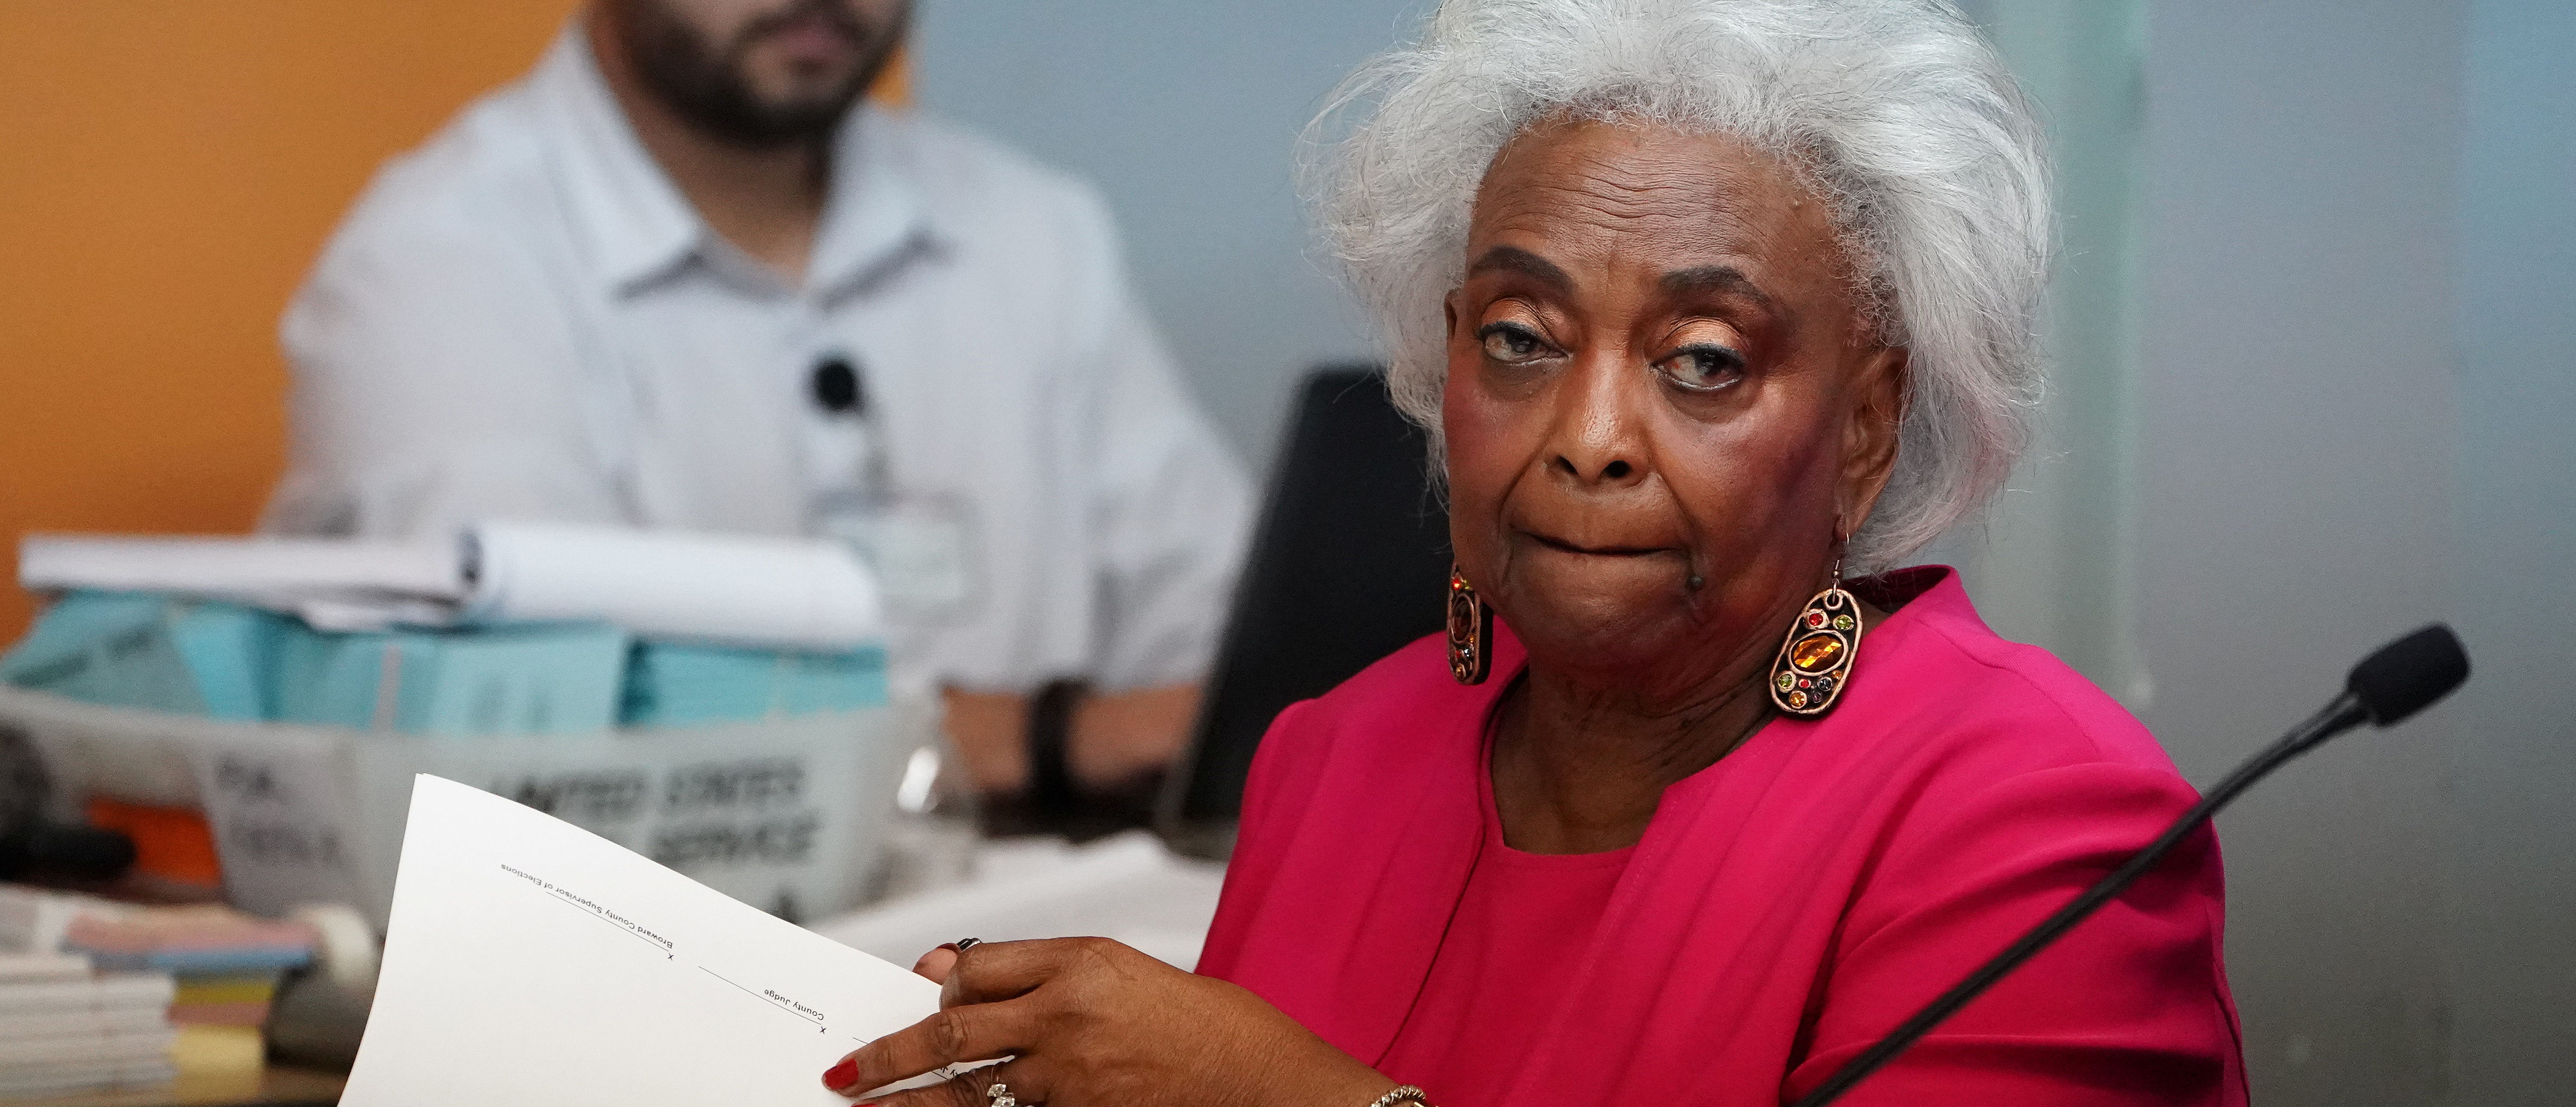 Broward County Supervisor of Elections Brenda Snipes listens during a ballot recount in Lauderhill, Florida, November 12, 2018. REUTERS/Carlo Allegri